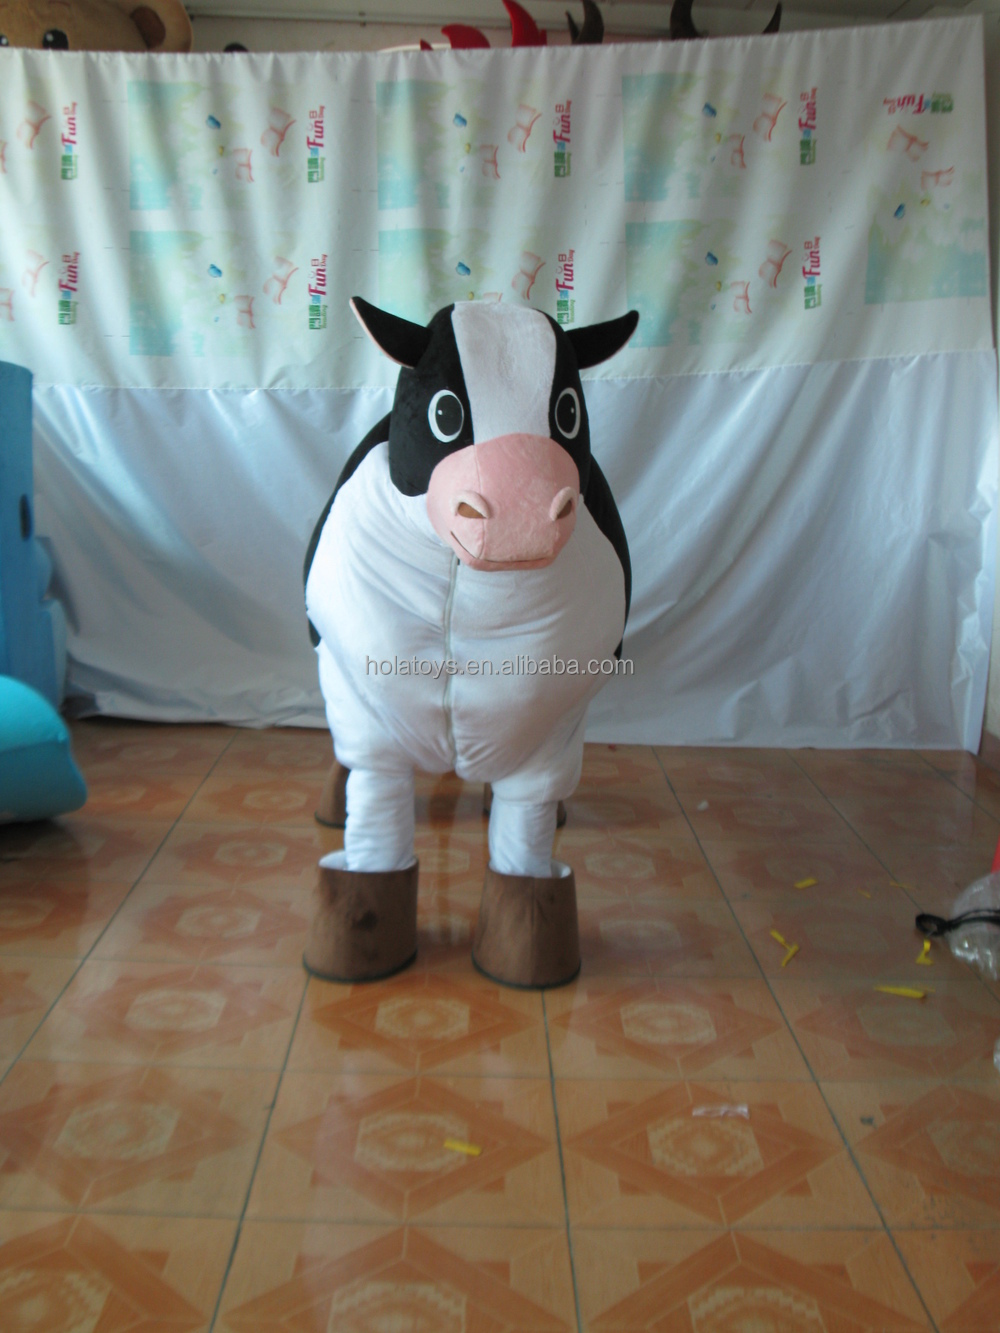 Hola new animal costumes/realistic animal costumes cow mascot costume